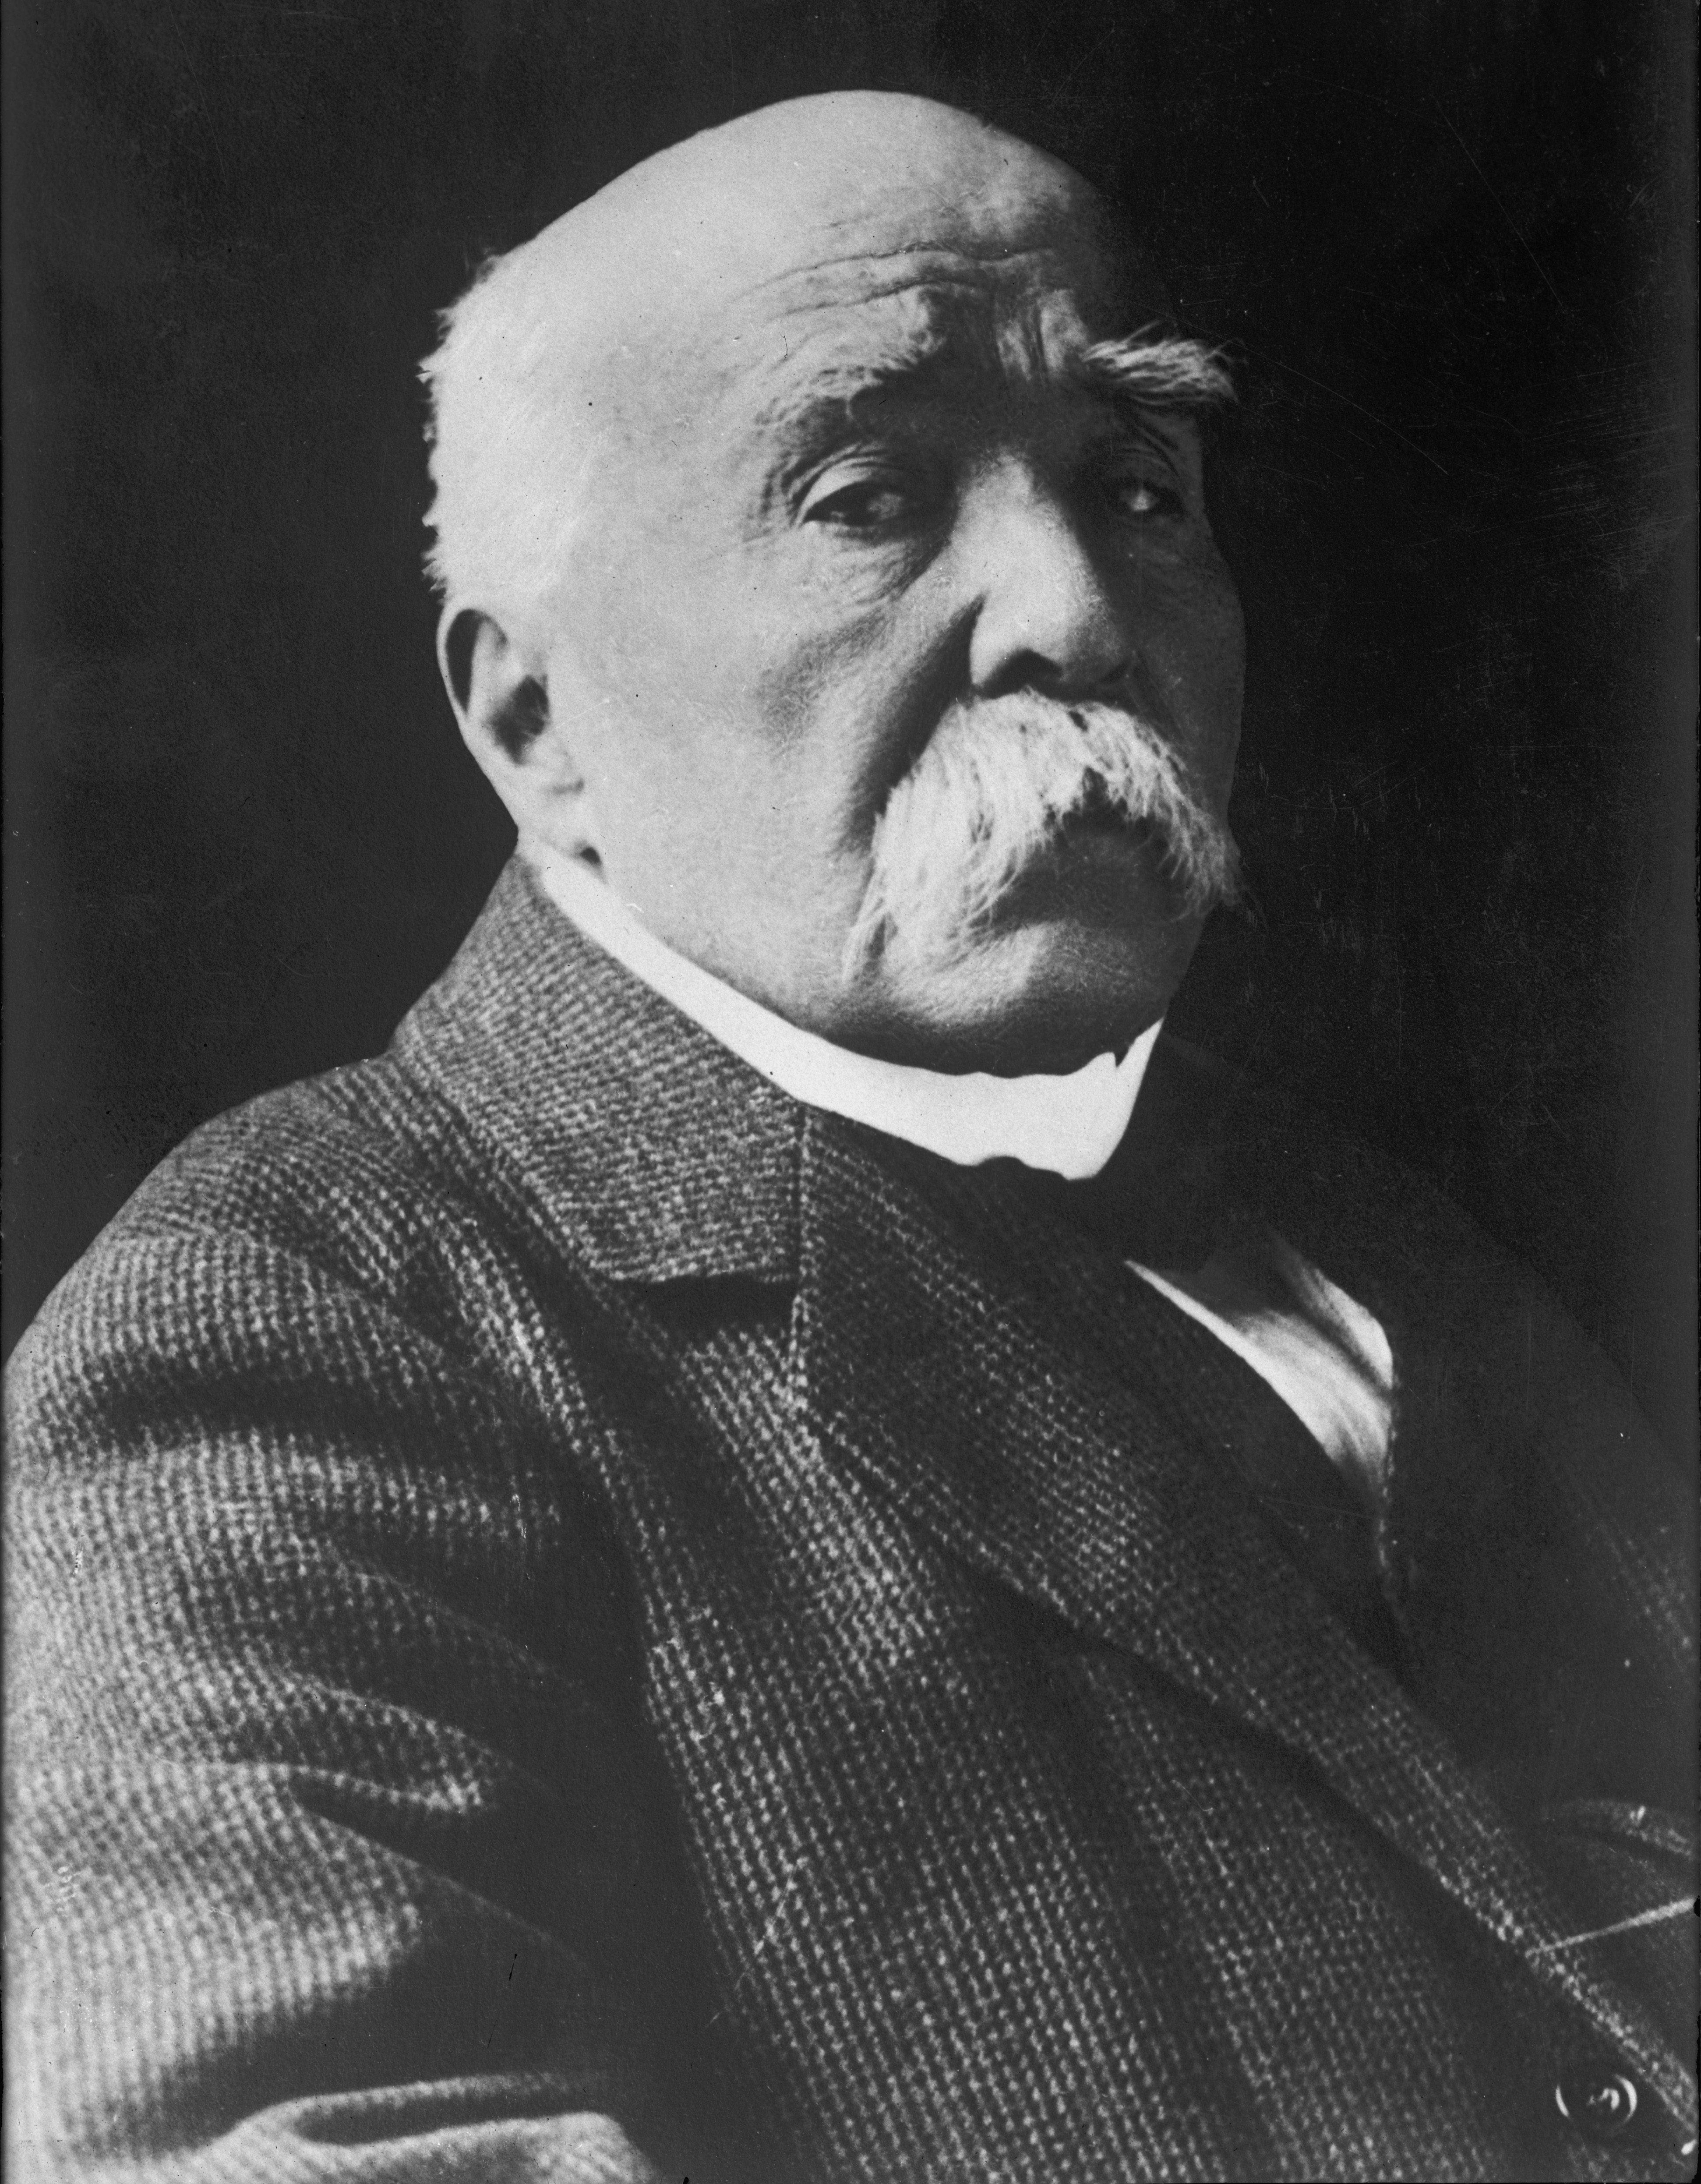 https://upload.wikimedia.org/wikipedia/commons/4/49/Georges_Clemenceau_1.jpg